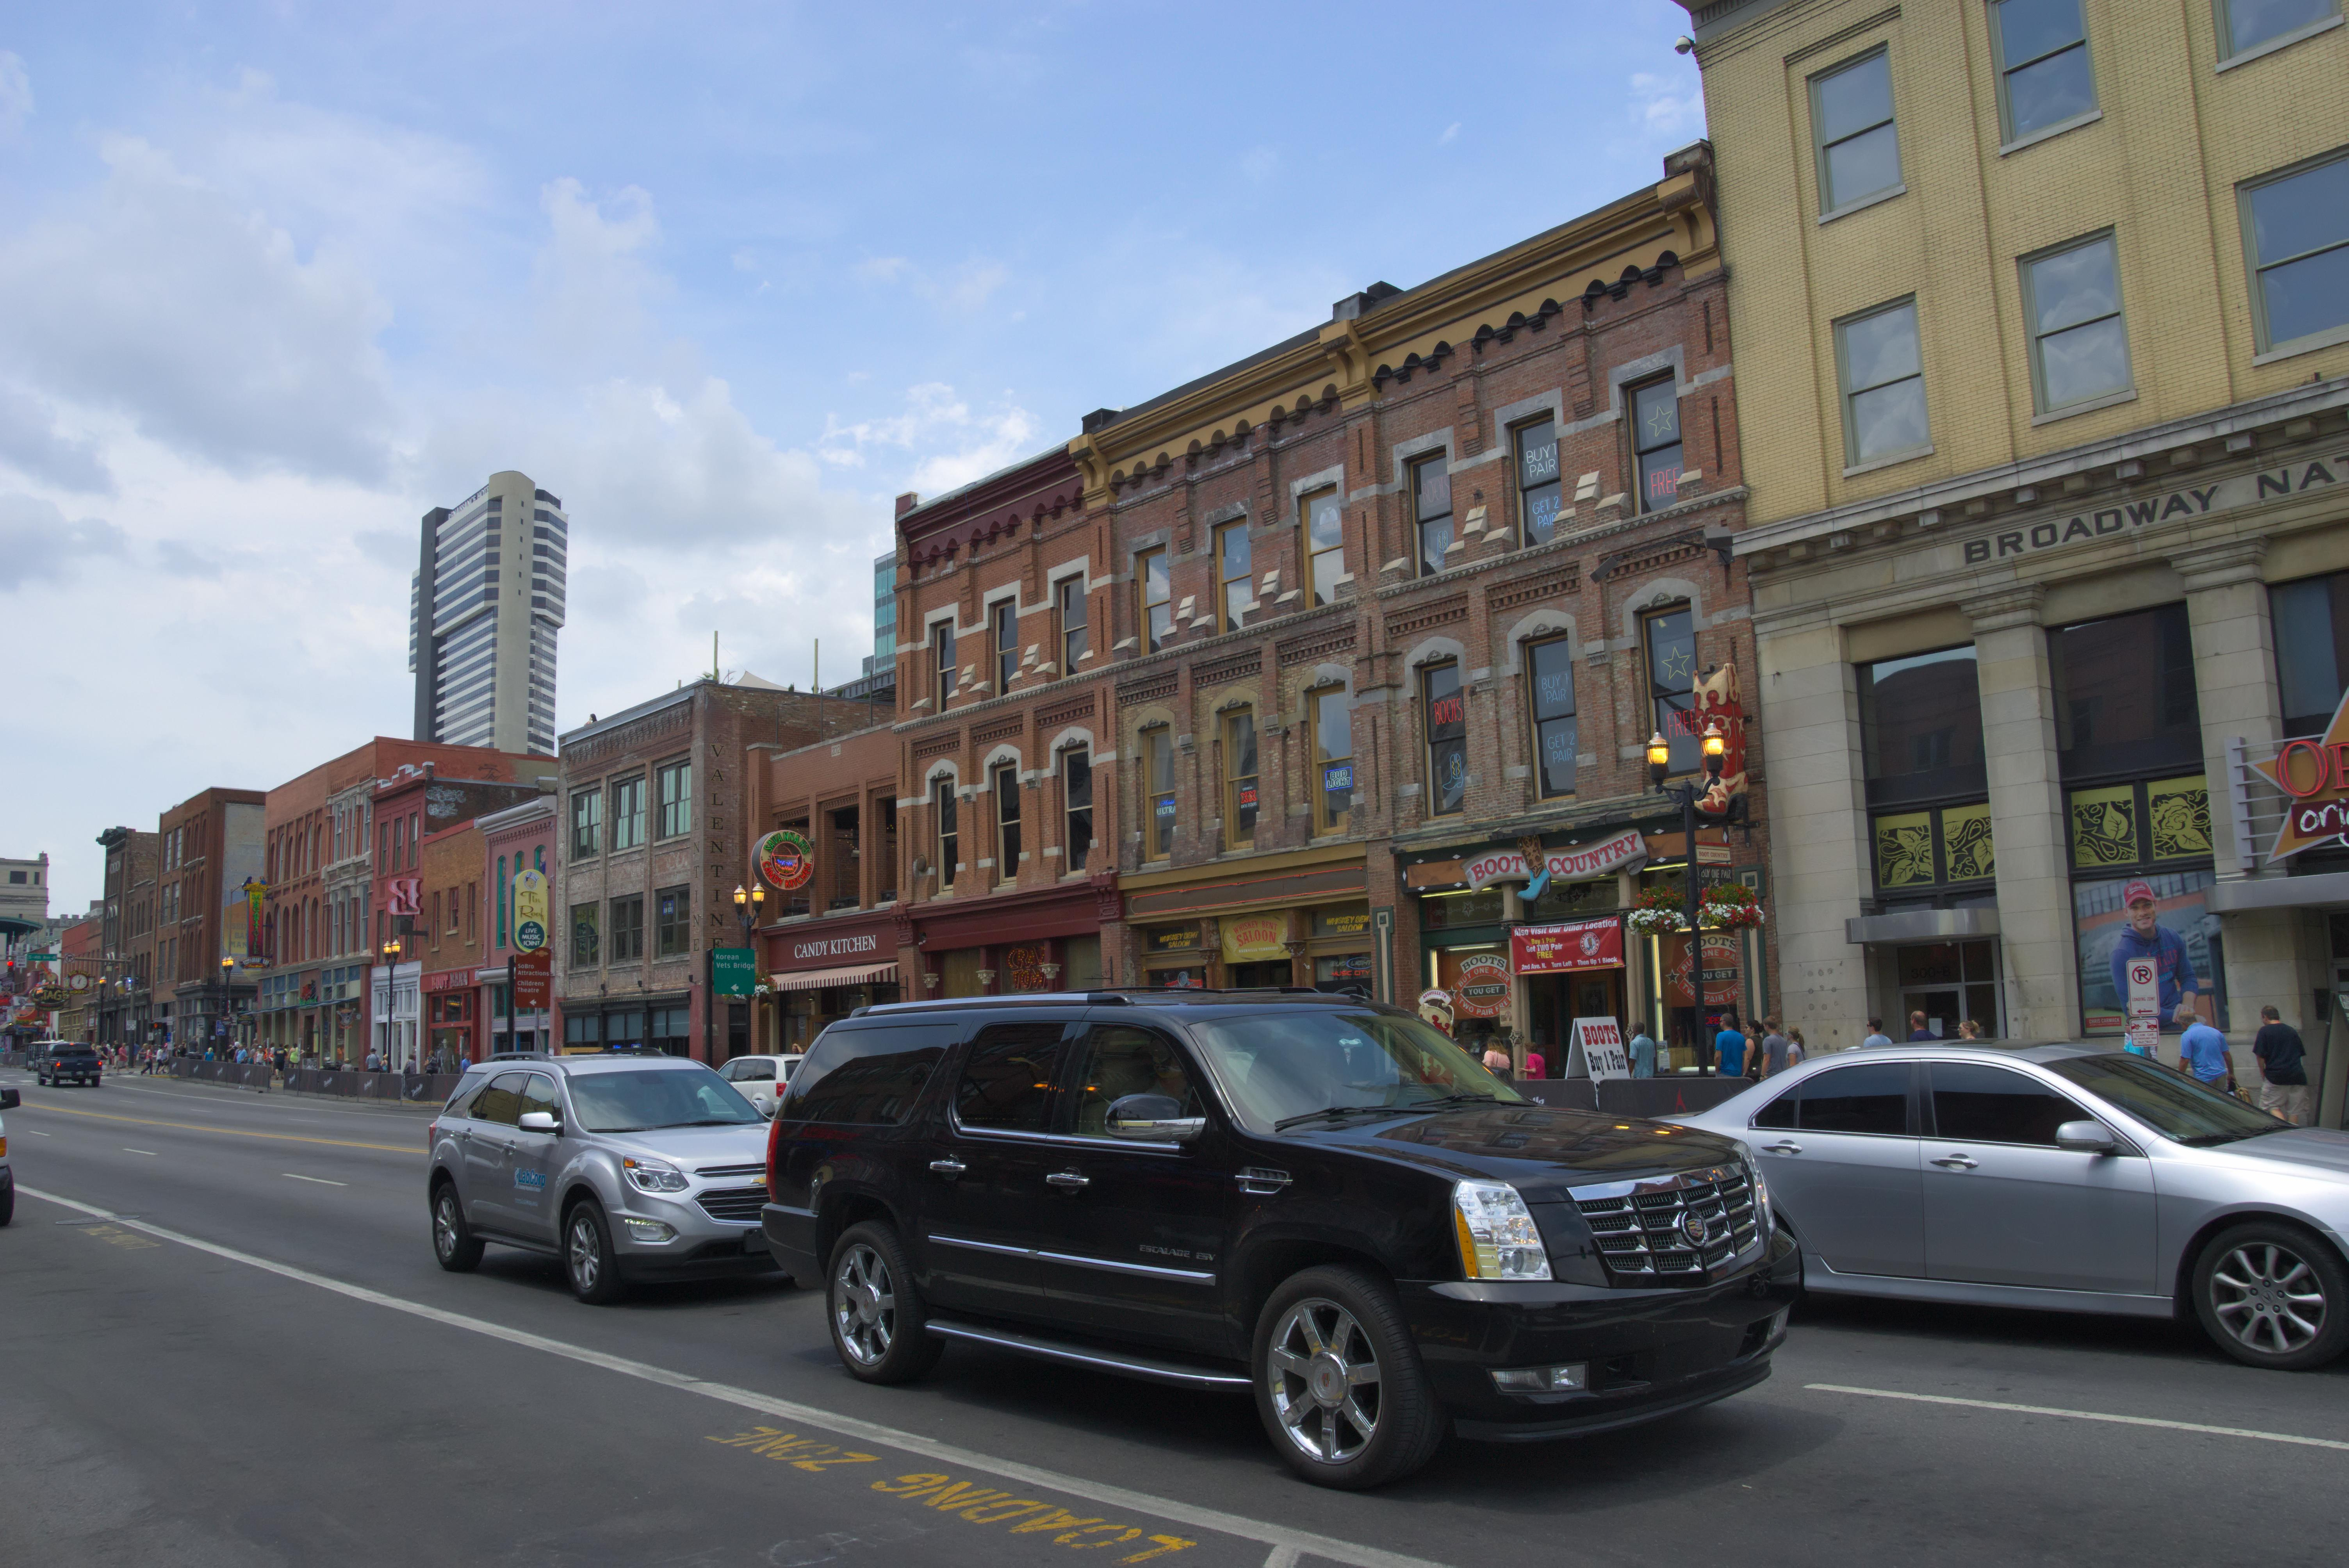 Broadway in Nashville, Architecture, Building, Building complex, Car, HQ Photo